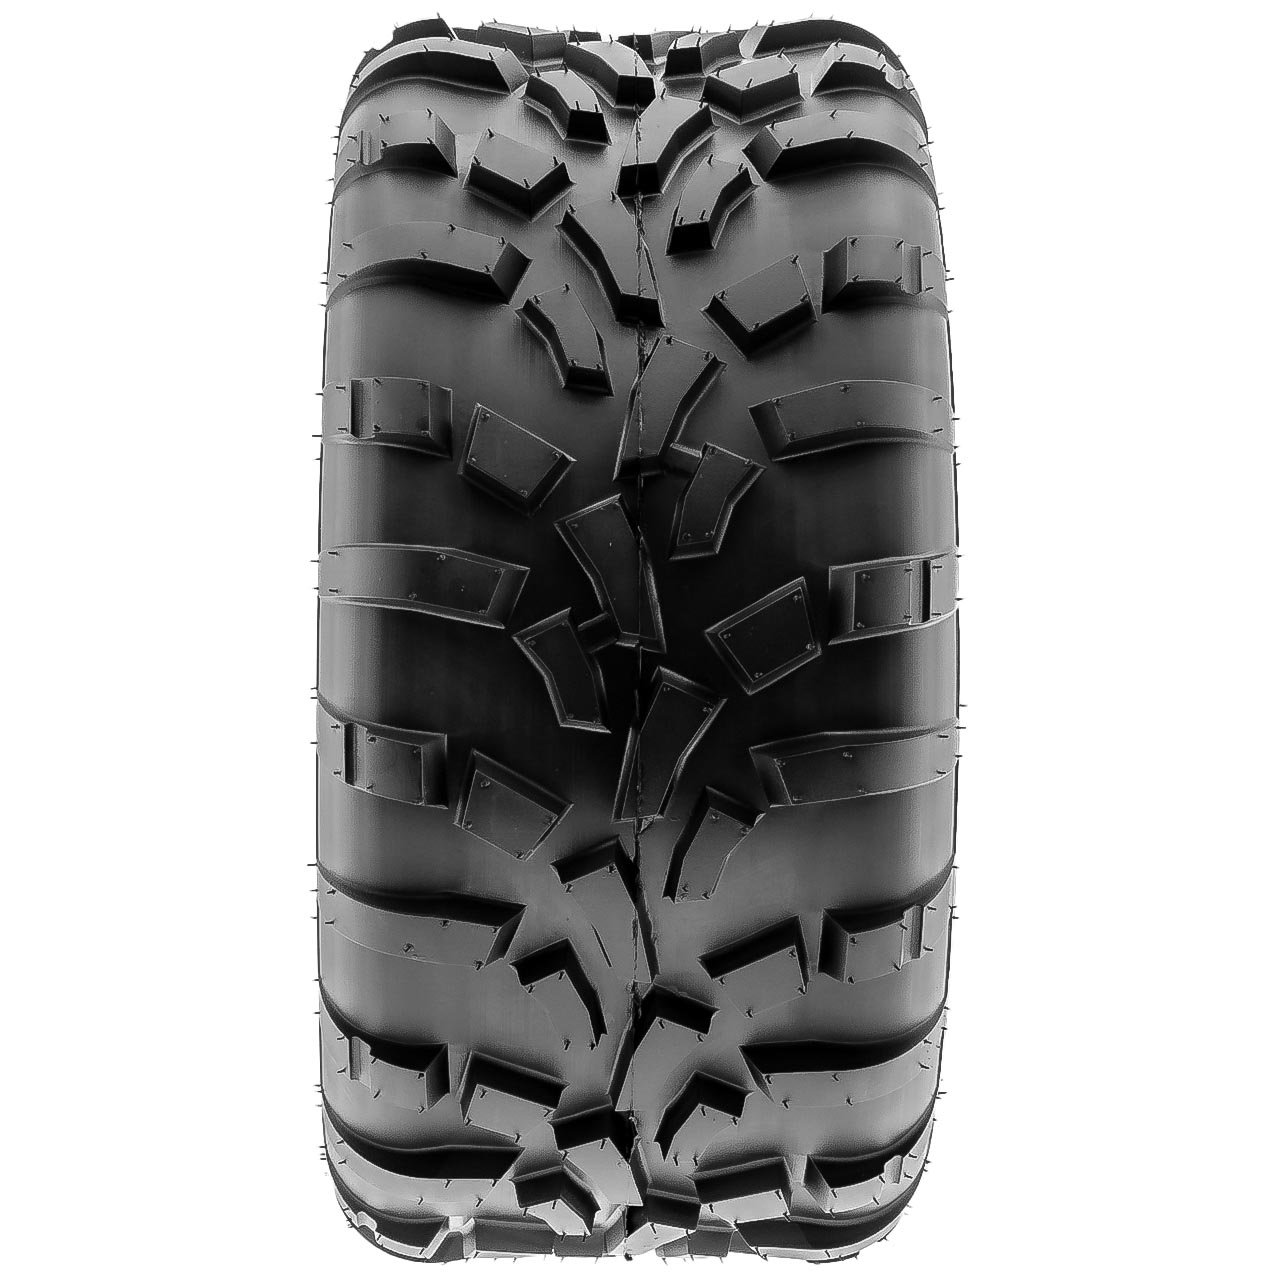 Pair of 2 SunF 25x11-12 AT-XC ATV/UTV Off-Road Tires , 6PR , Directional Knobby Tread | A010 by SunF (Image #7)